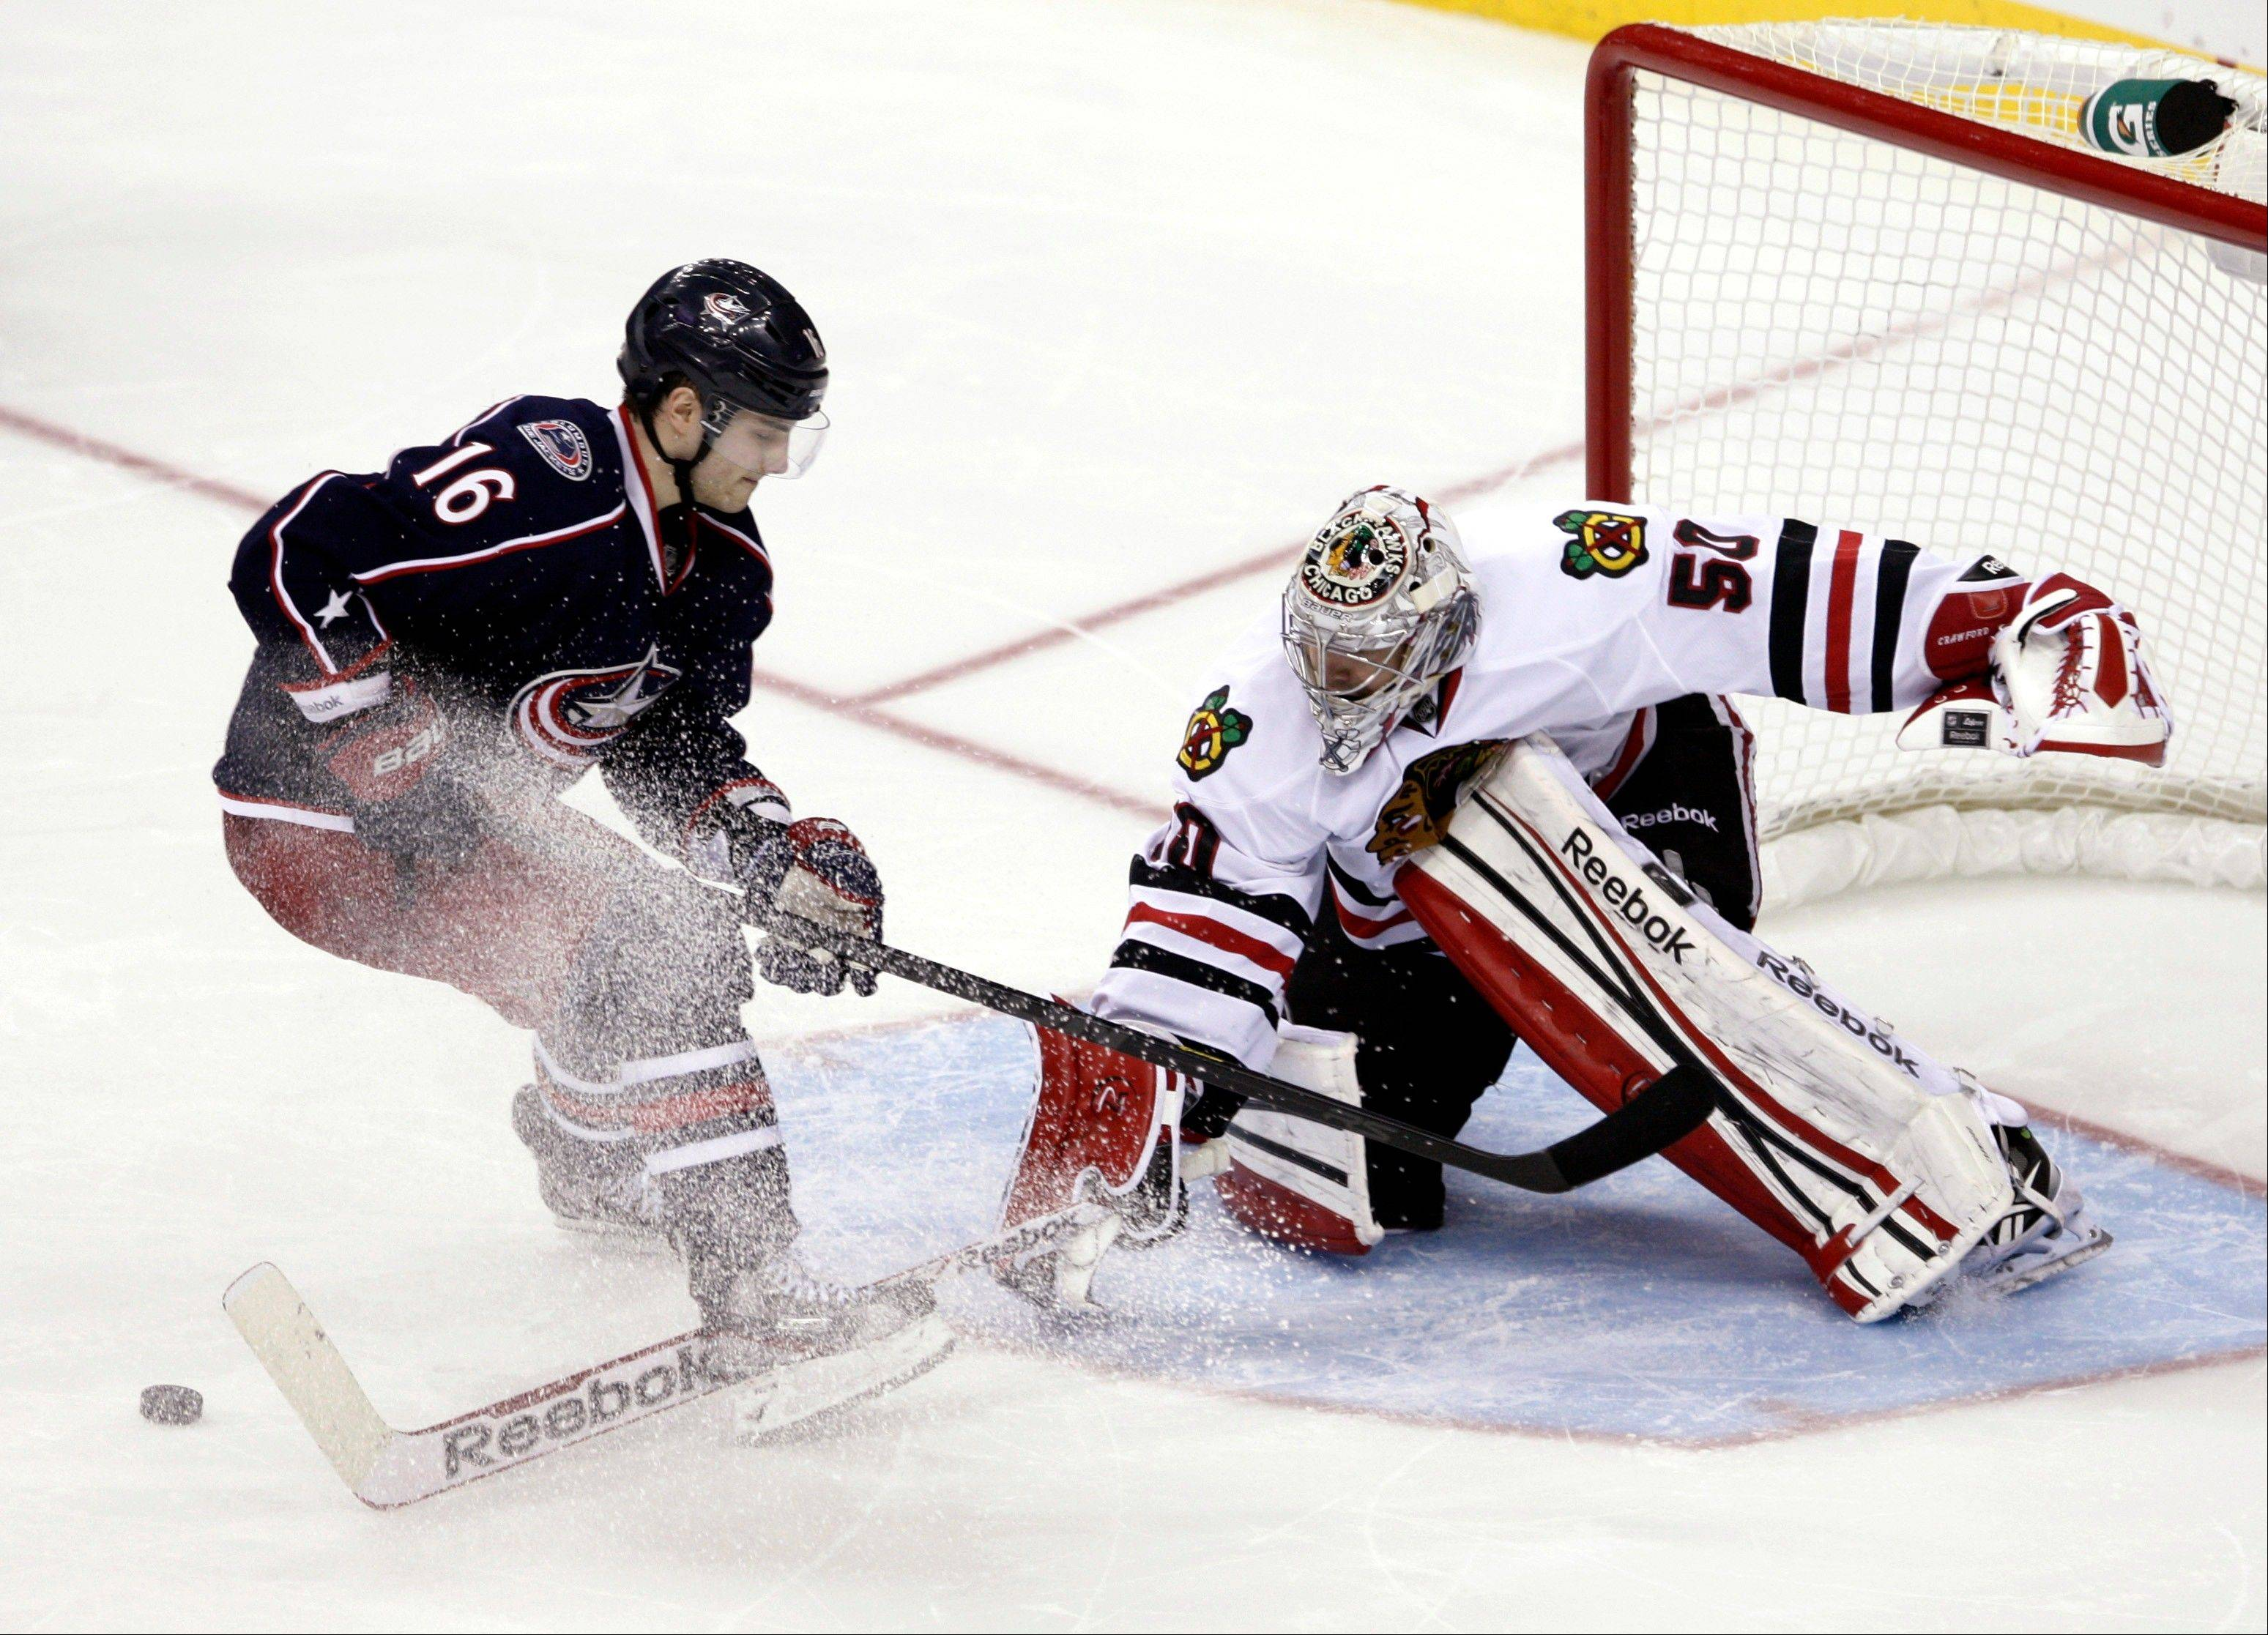 Blackhawks goalie Corey Crawford, right, stops a shot by Columbus Blue Jackets' Derick Brassard in the shootout of an NHL hockey game in Columbus, Ohio, Thursday, March 14, 2013. The Blackhawks won 2-1.